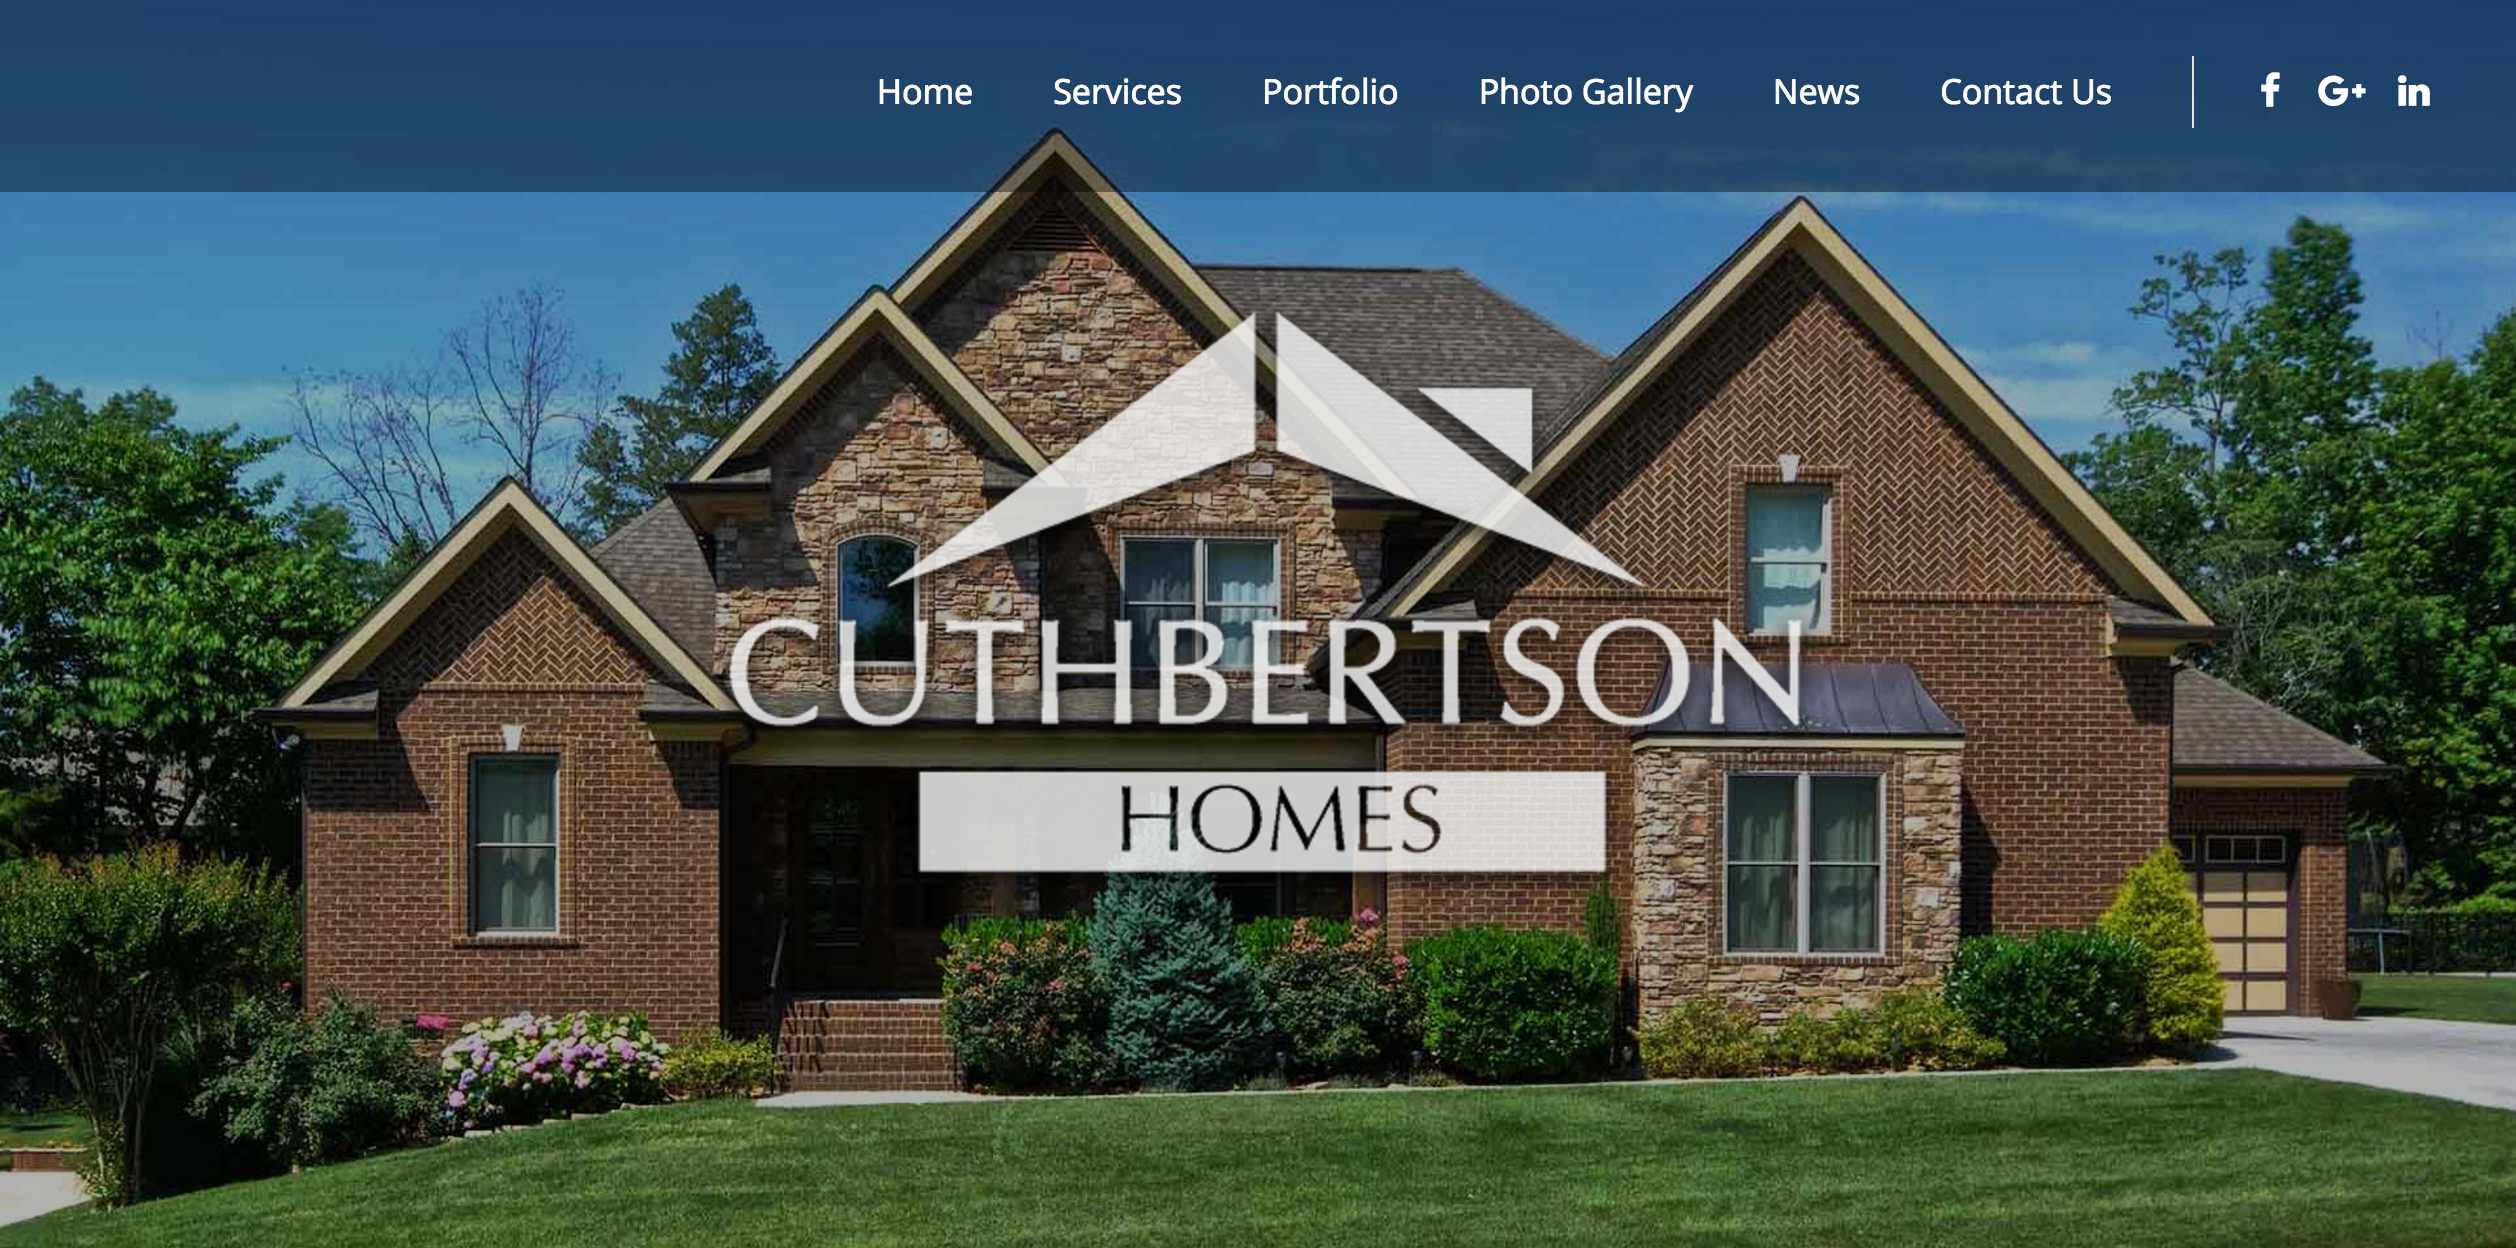 Cuthbertson Homes